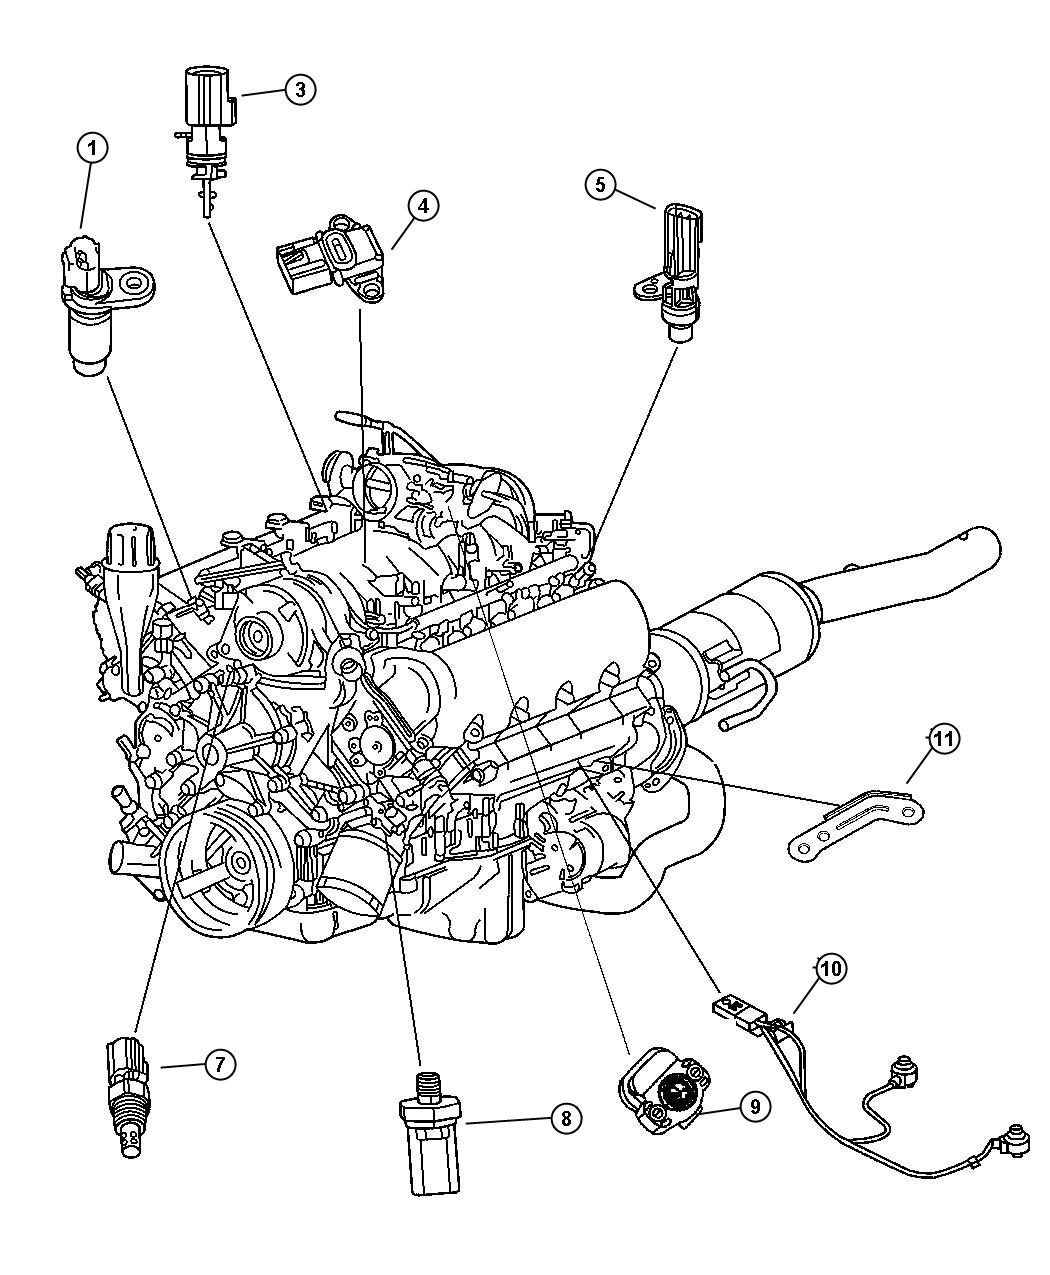 1997 Subaru Impreza 2 2l Serpentine Belt Diagram together with Wrx Coolant Temp Sensor Location as well Subaru Impreza Wrx 2002 Cooling System Diagram besides 2002 Dodge Caravan Map Sensor Location in addition 2000 Subaru Outback Timing Belt. on 2001 subaru outback water pump location